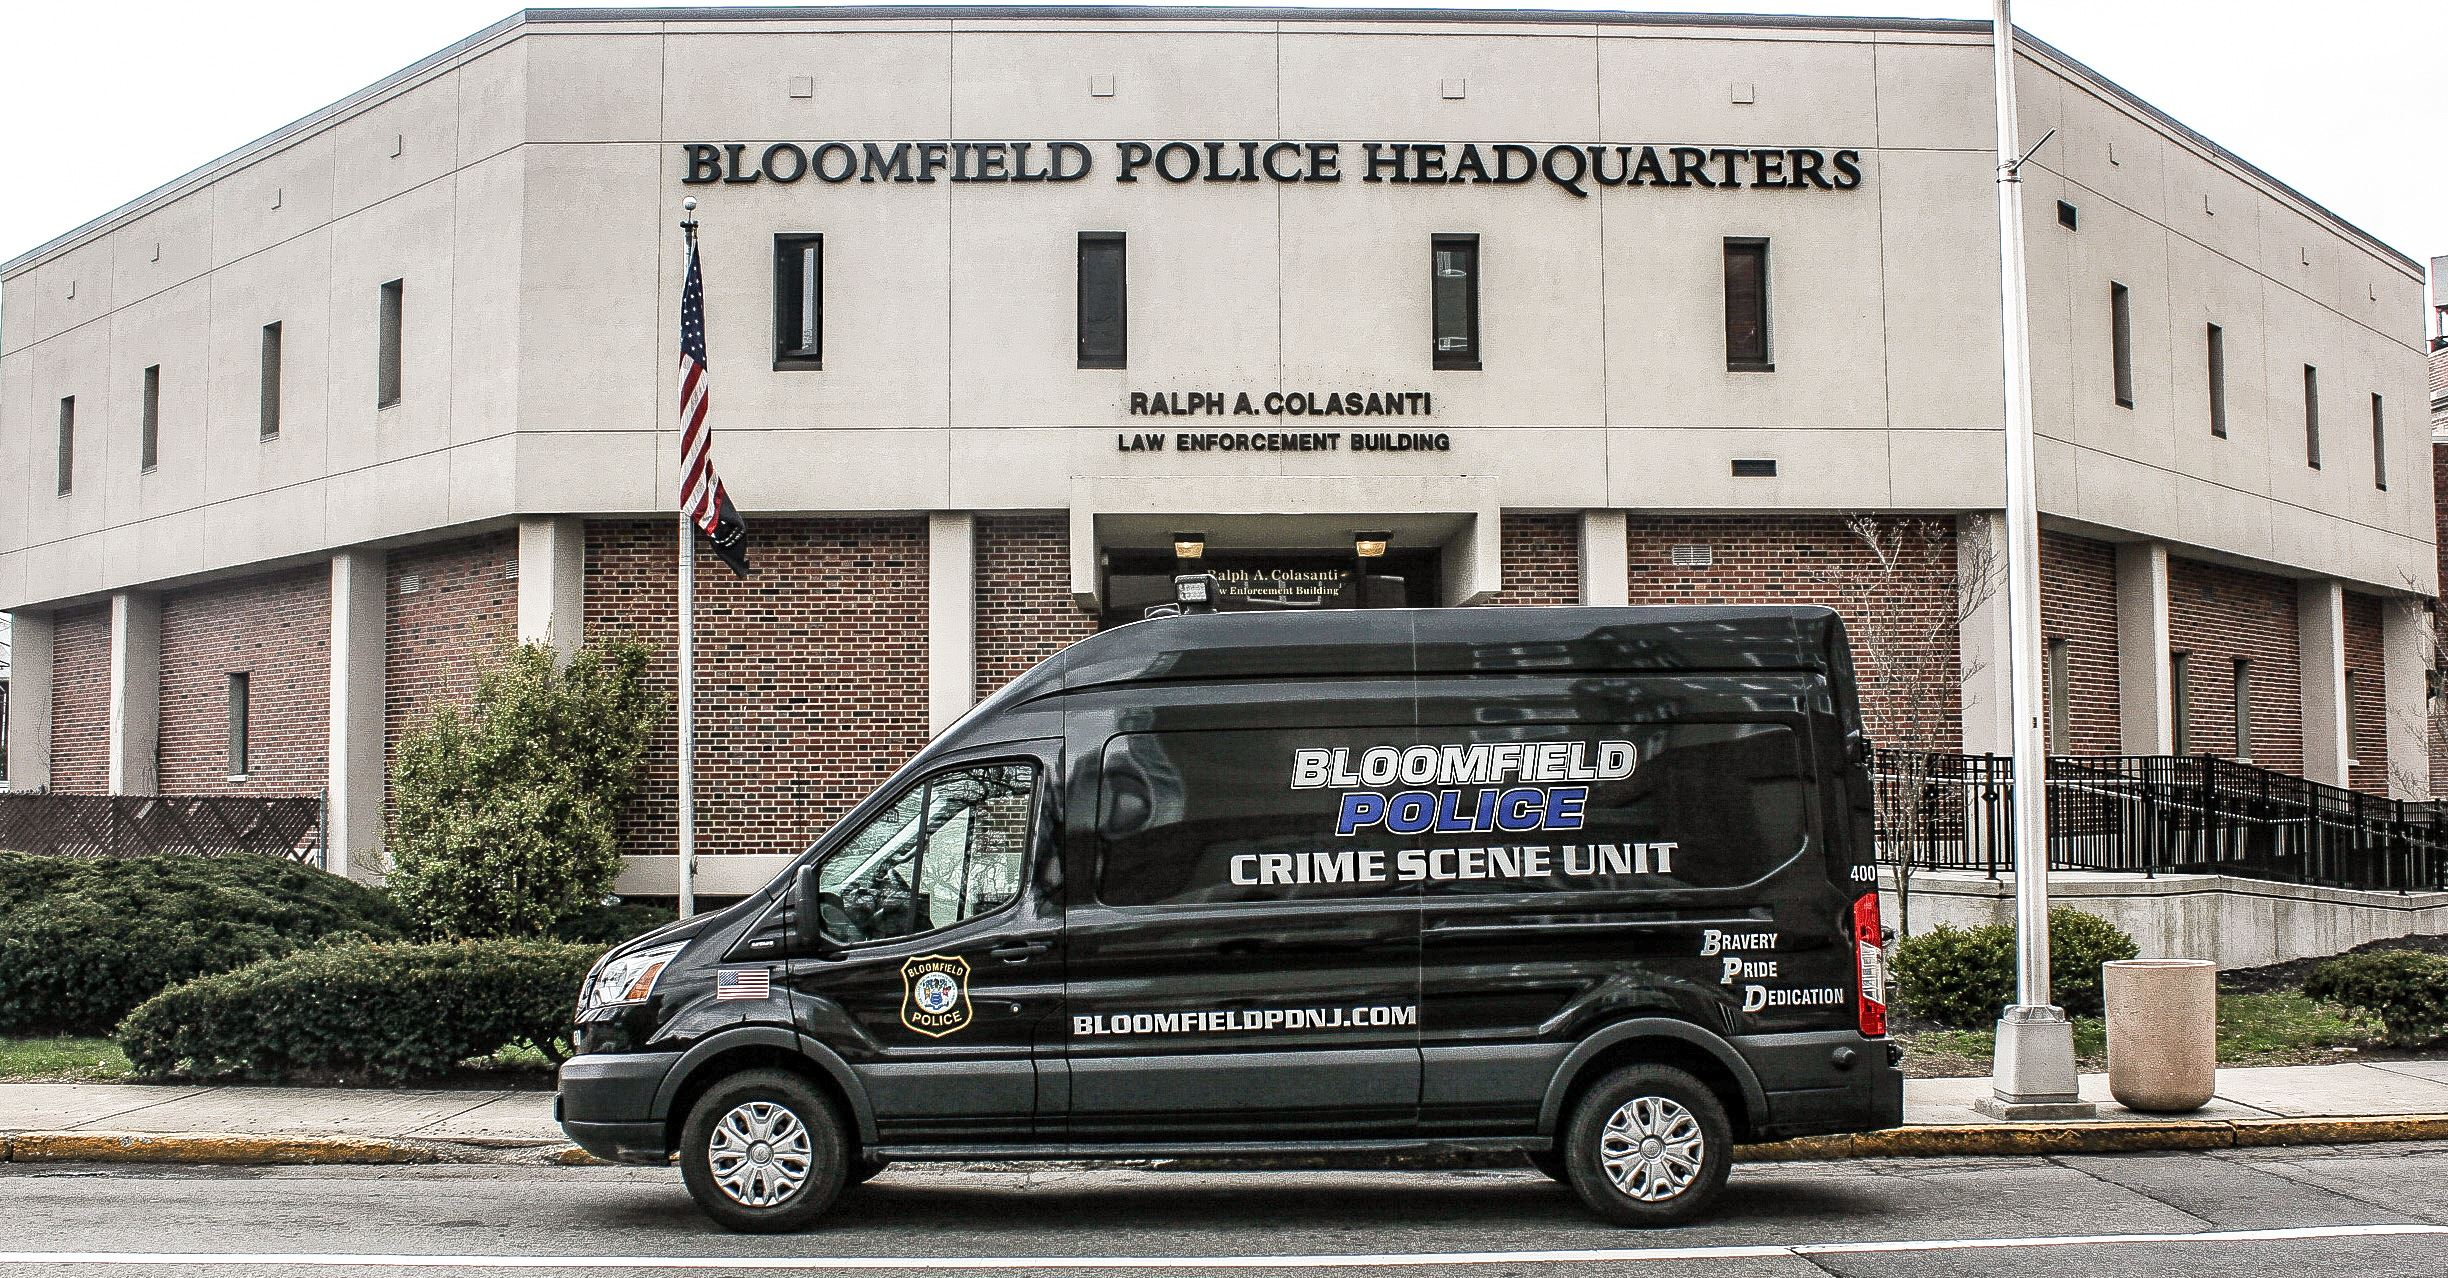 Police Headquarters Van